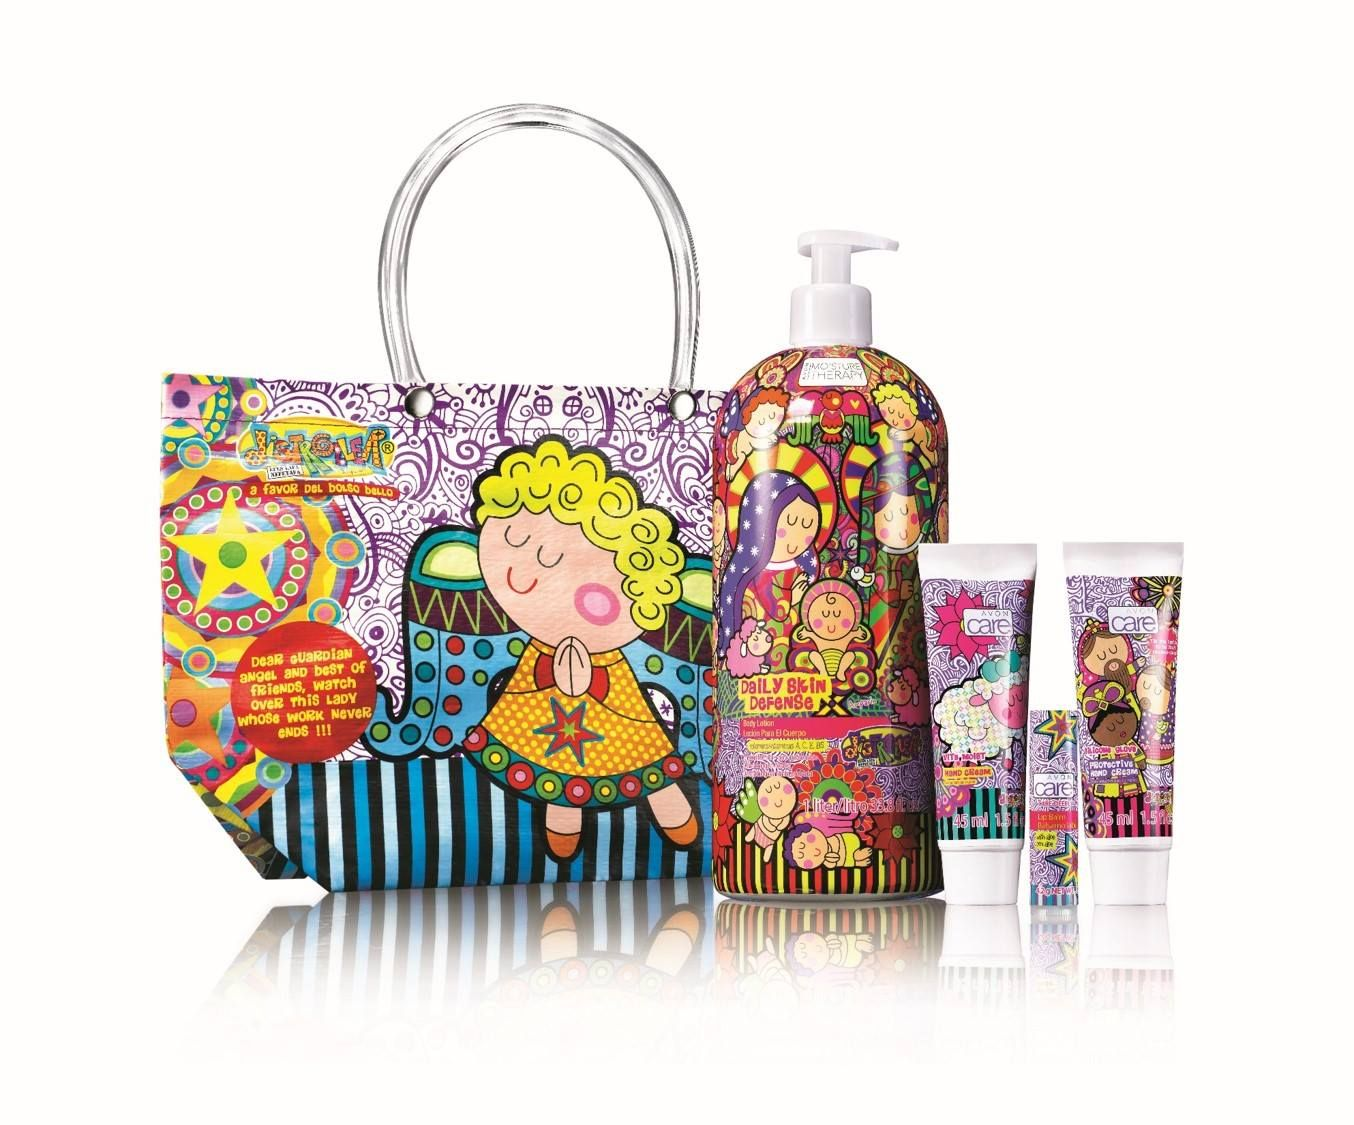 AVON CALLING...Our Limited Edition Distroller Bundle is all dressed up and coming to you in Campaign 24! Designed by Mexican artist Amparin, this adorable collection arrives just in time to celebrate the Nativity! Makes a great Christmas gift for anyone & any age. Order here: www.youravon.com/mhamilton39 for only $15.99 for the set. Will be available Tuesday online the 27th. Register your email wiht me and get 10% off your next purchase plus other great offers. Thanks and Merry Shopping!